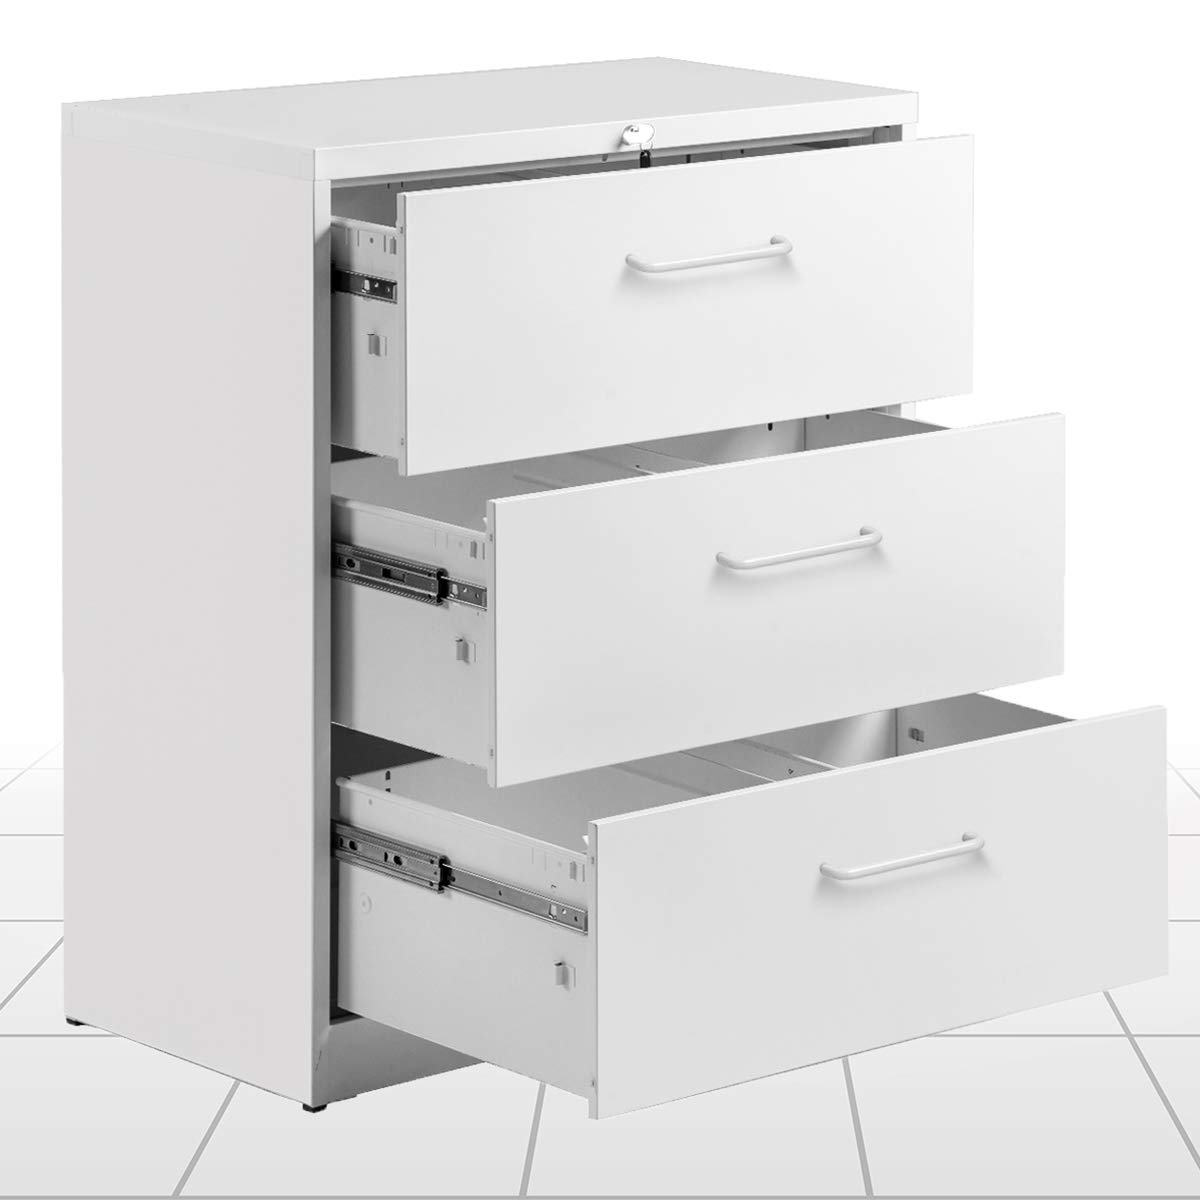 3 Drawers lateral Filing Cabinet 2 Drawer Locking File Cabinet Metal Organizer Heavy Duty Hanging File Office Home Storage by Modern Luxe